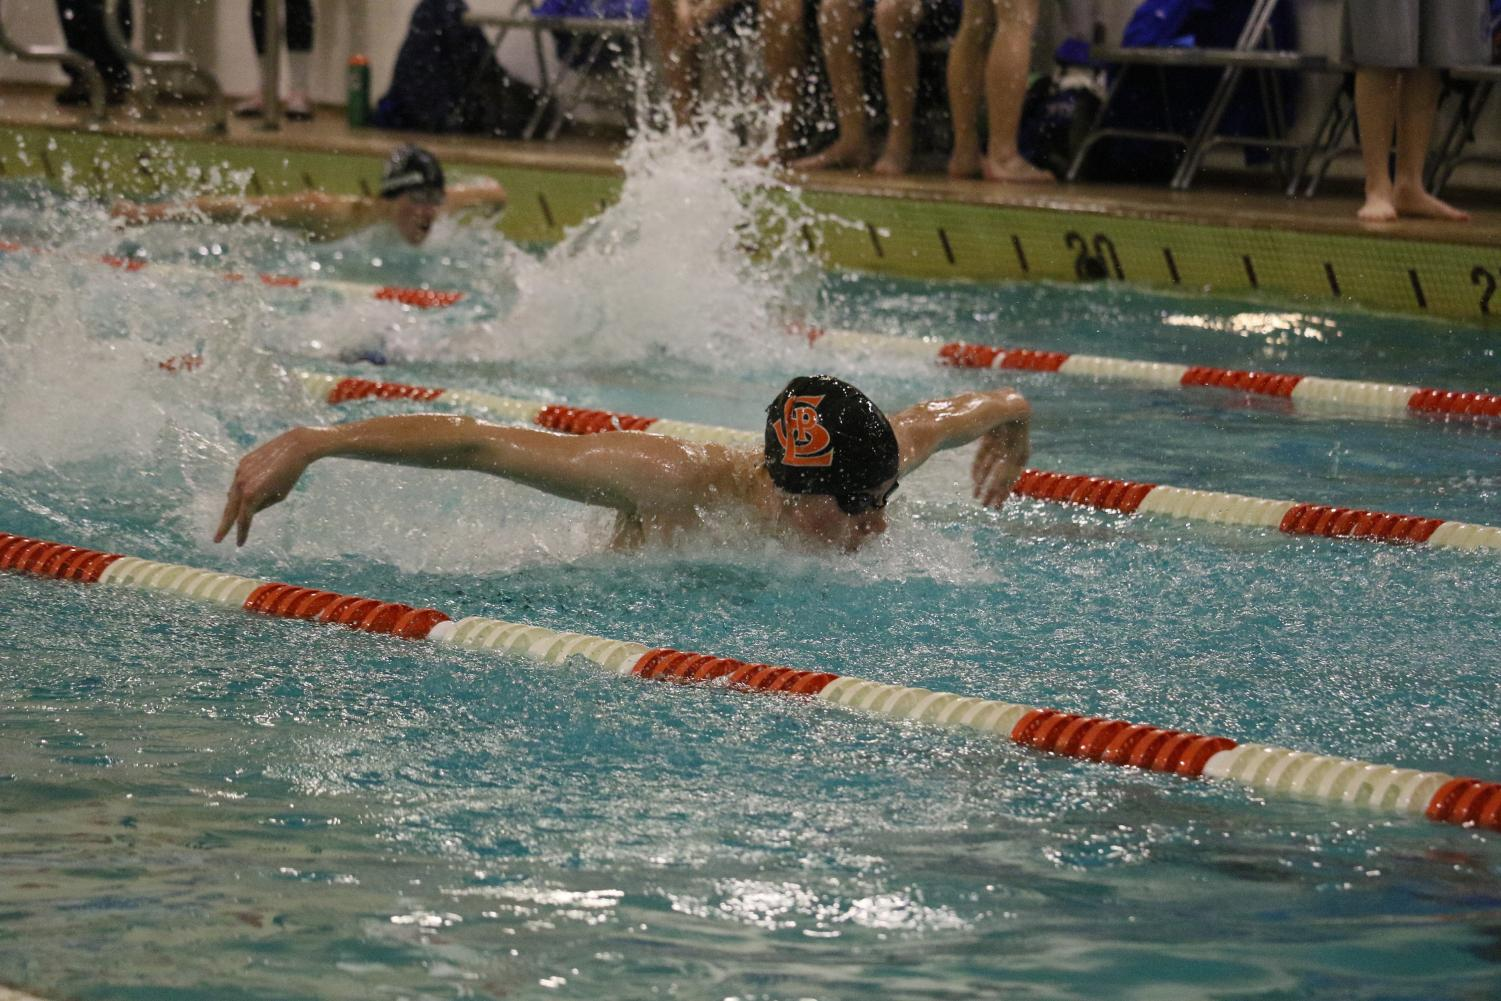 Senior Luke Anderson competes in butterfly during a meet against Bloomington Jefferson. Anderson recently committed to continue swimming at the University of St. Thomas next year.